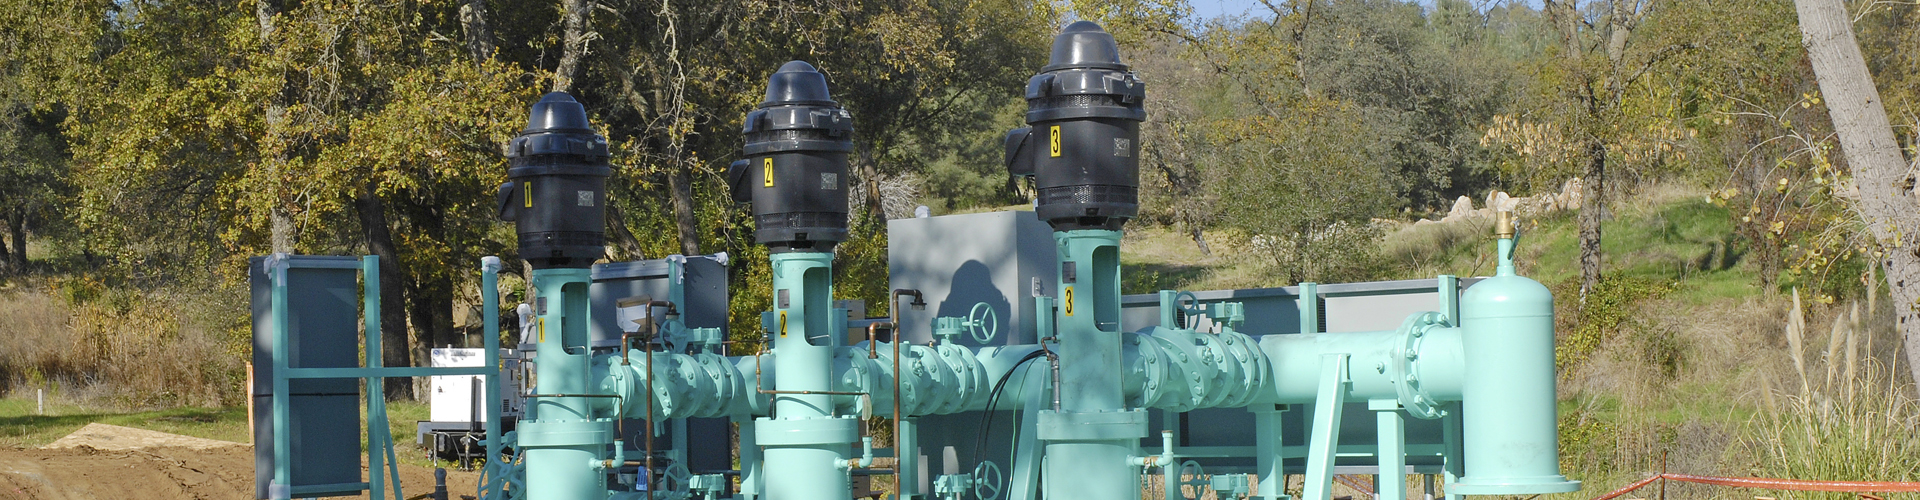 Butler Circle Pump Station | Placer County Water Agency Vertical Turbine Pump Station